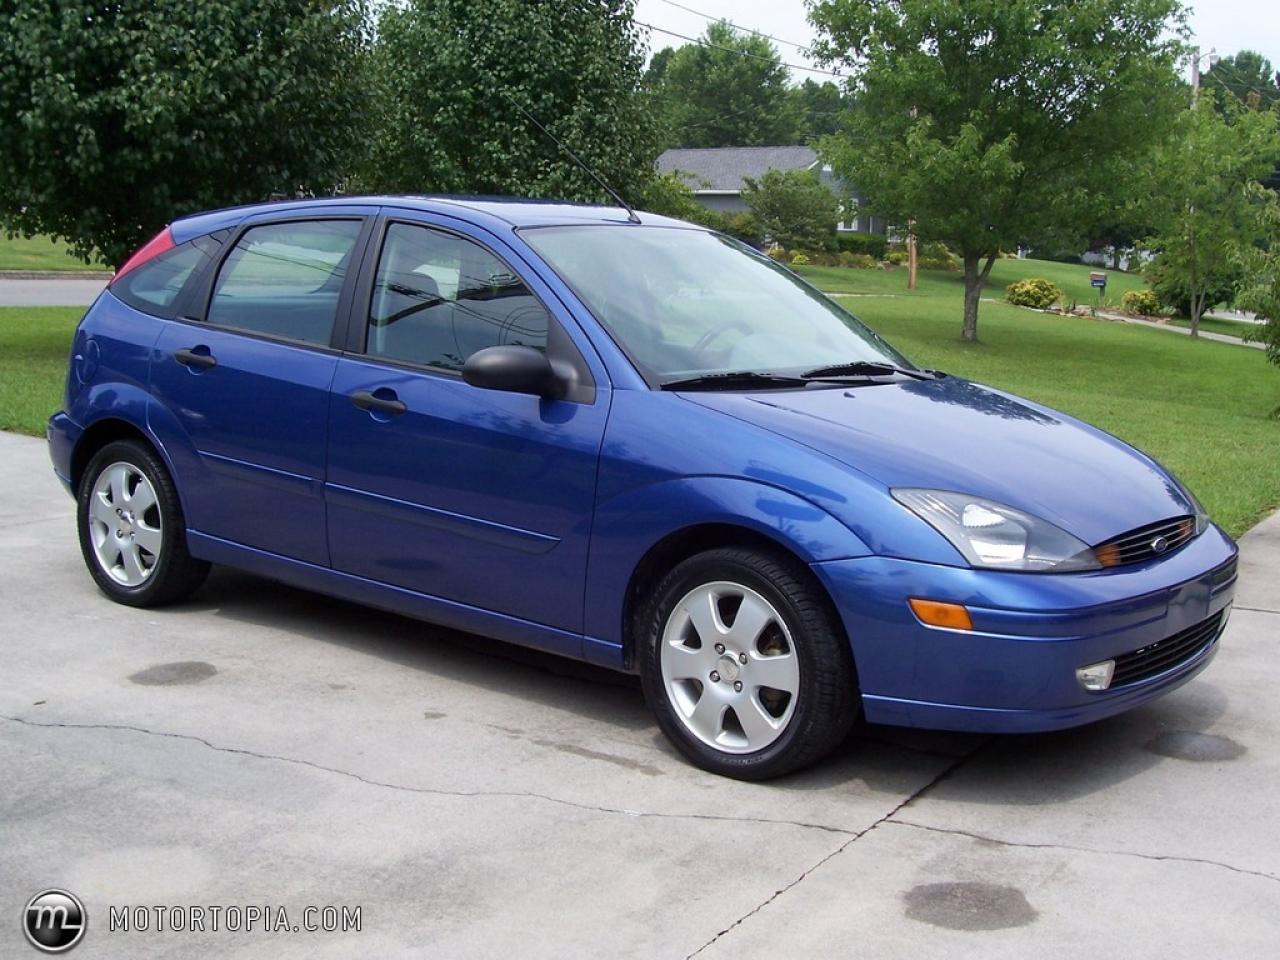 2003 Ford Focus - Specs, Data, Features - new-cars